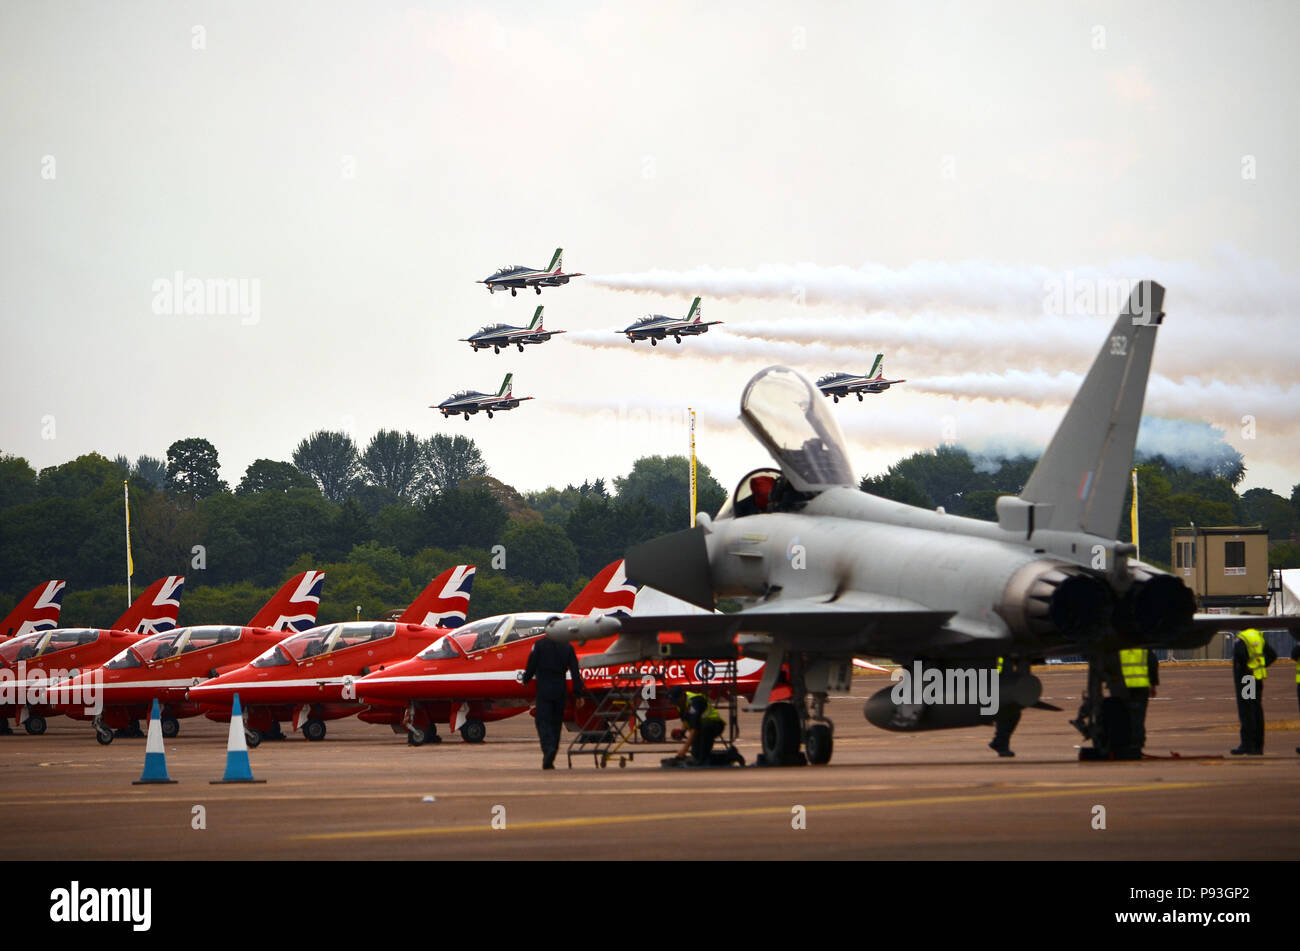 The Royal International Air Tattoo, Horcott Hill, Fairford - Stock Image